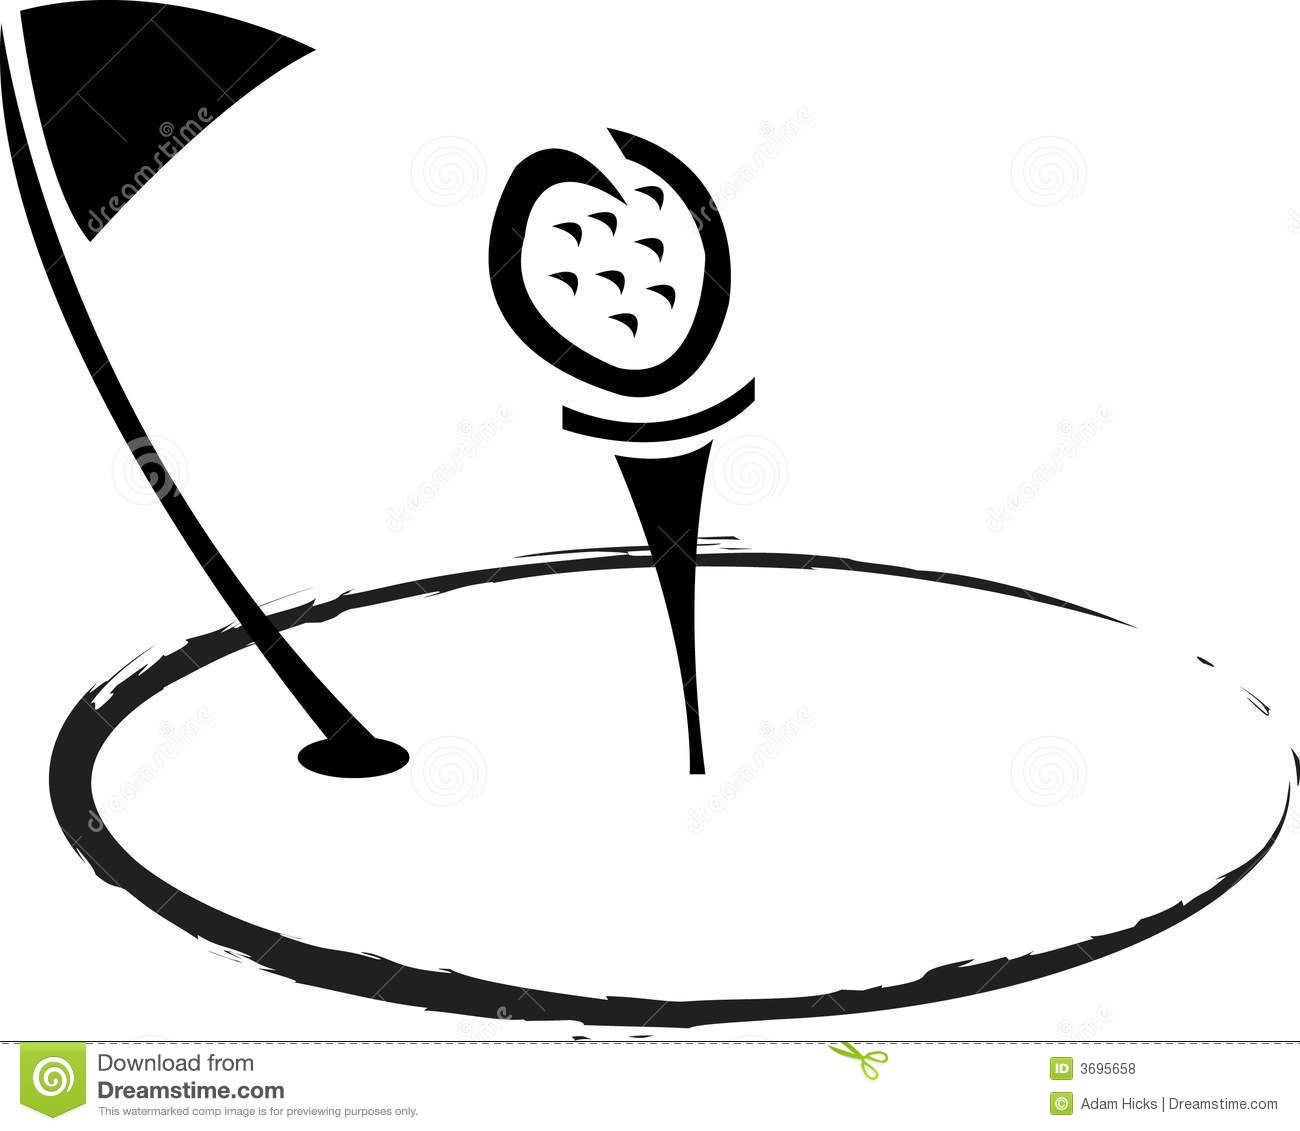 Free black and white golf clipart graphic free download 45+ Golf Clip Art Black And White | ClipartLook graphic free download